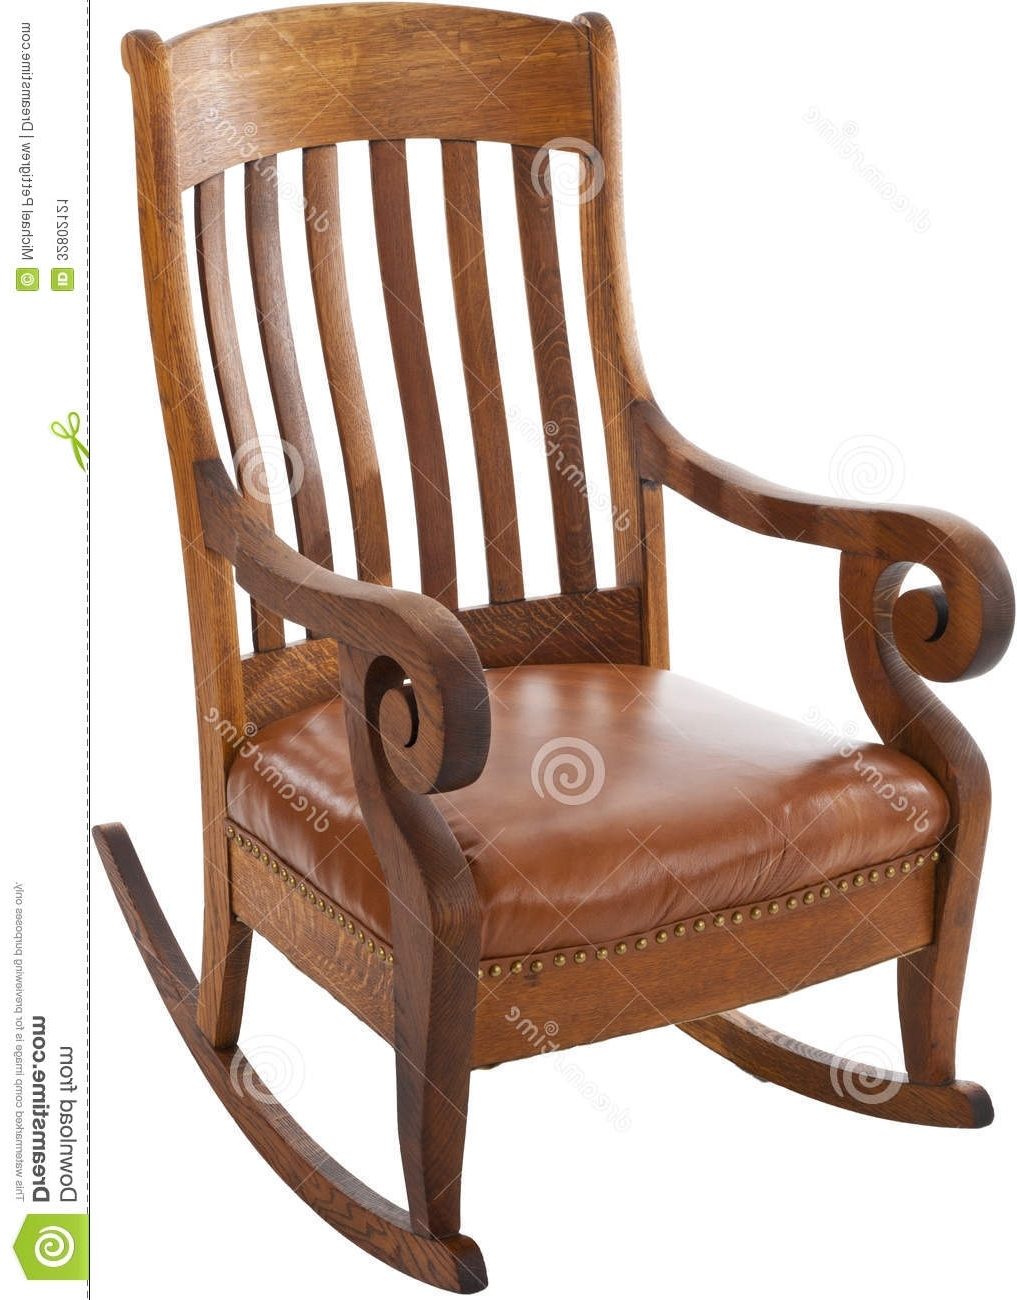 Mesmerizing Antique Rocking Chair Hd Photos Bed No Arms For Sale In Famous Old Fashioned Rocking Chairs (View 15 of 15)